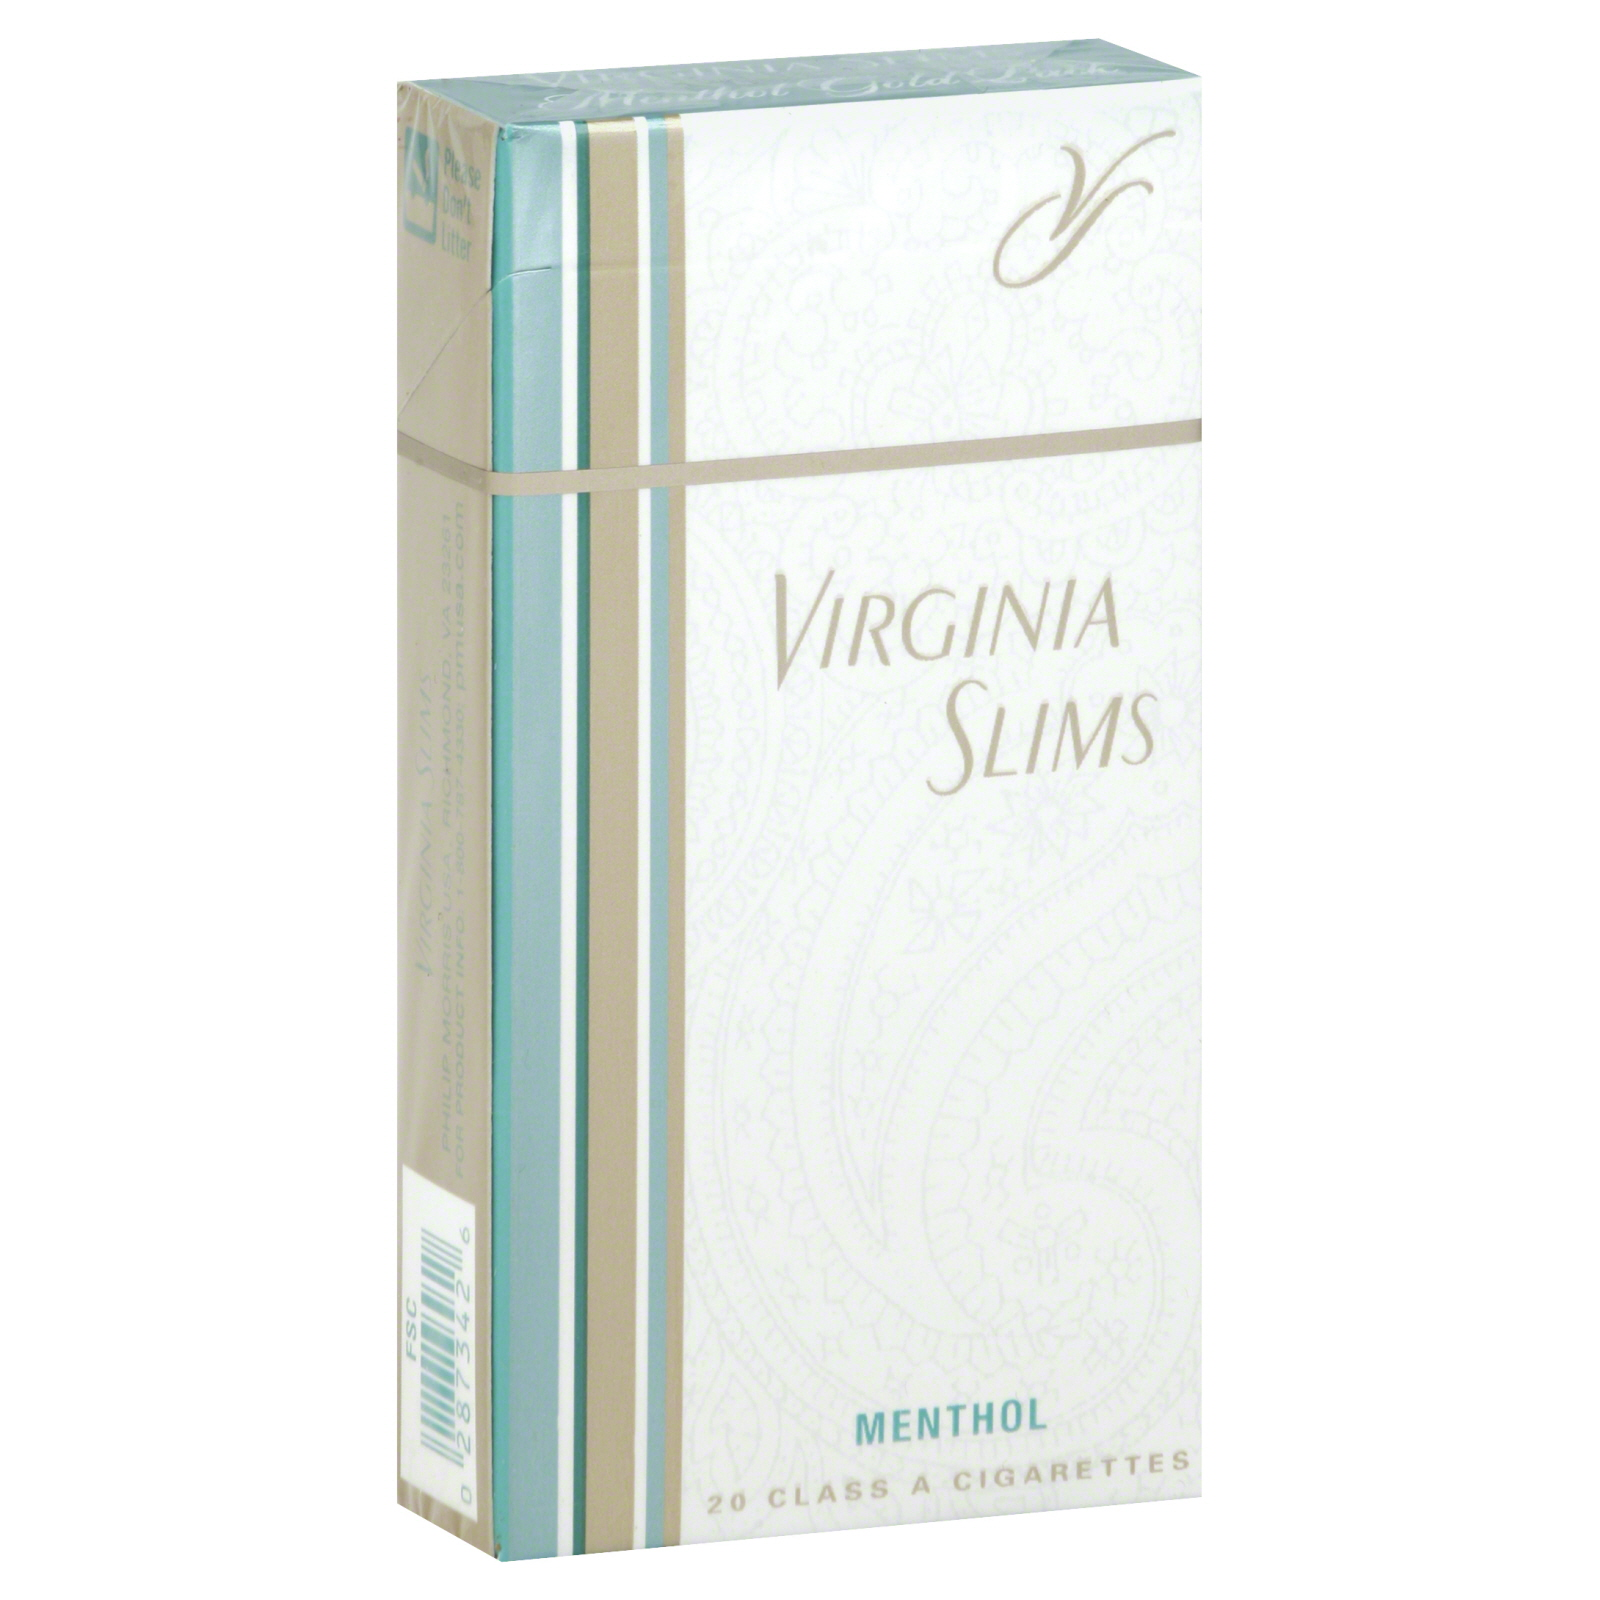 Virginia Slims Cigarettes Class A Menthol Gold Pack 20